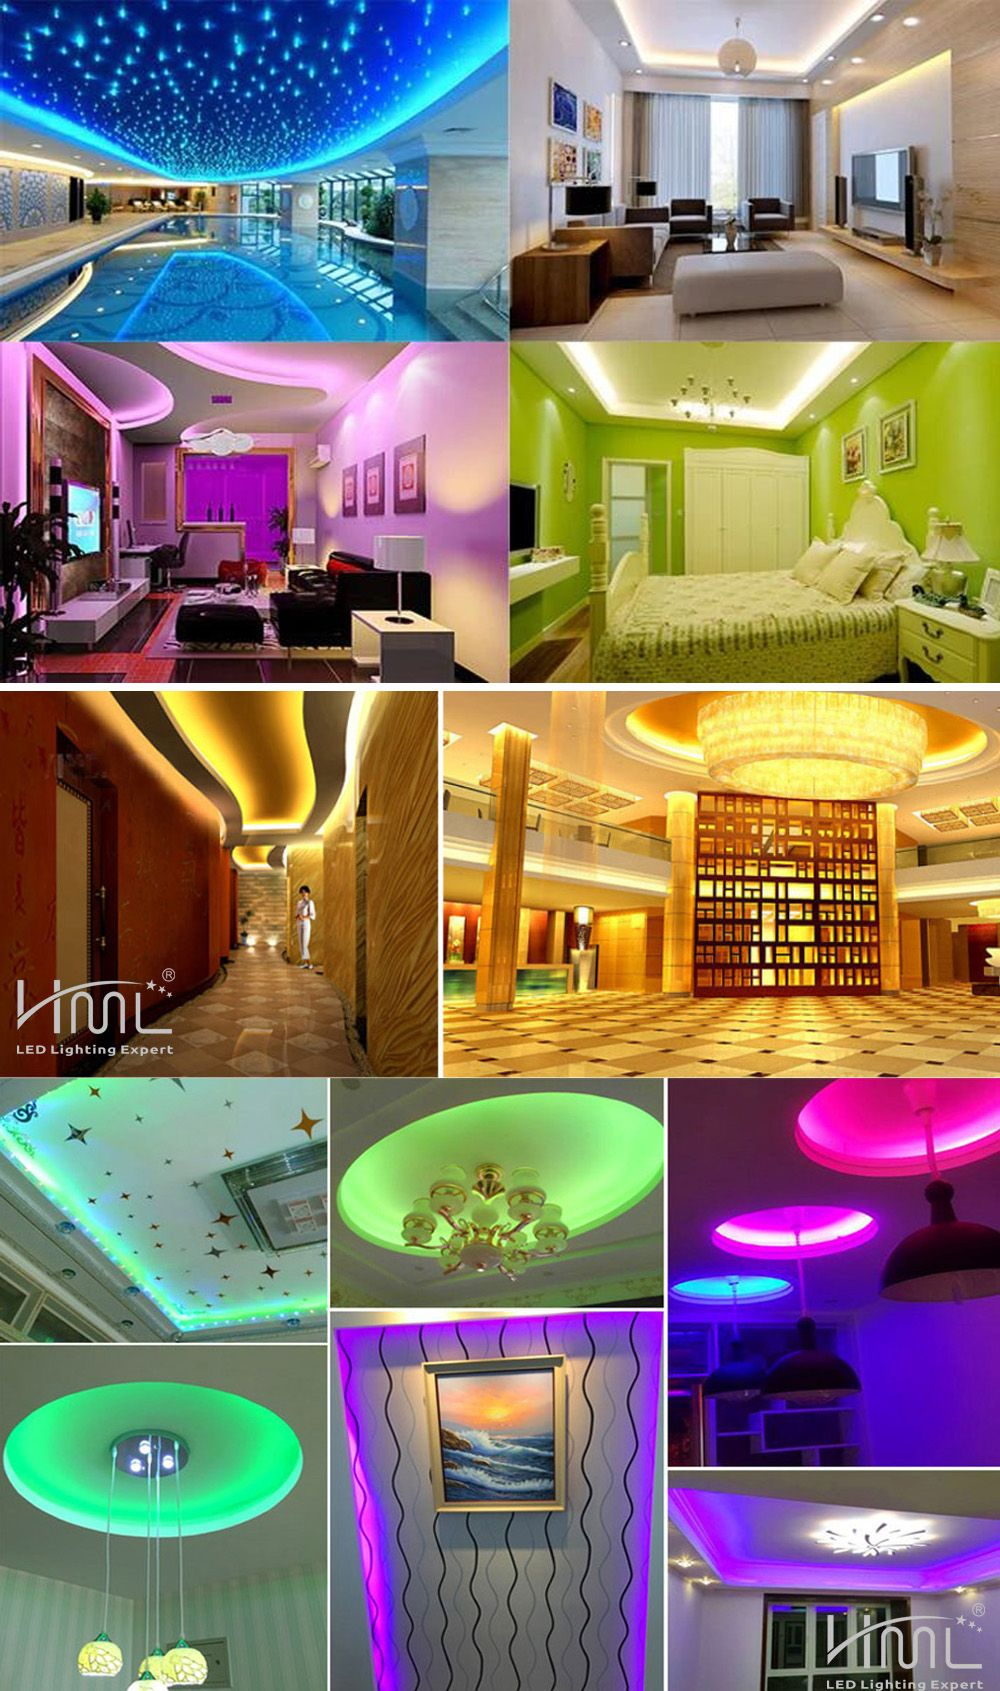 HML Waterproof LED Strip Light 5M 24W RGB SMD2835 300 LEDs - with IR 20 Keys Music Remote Control and EU Ad